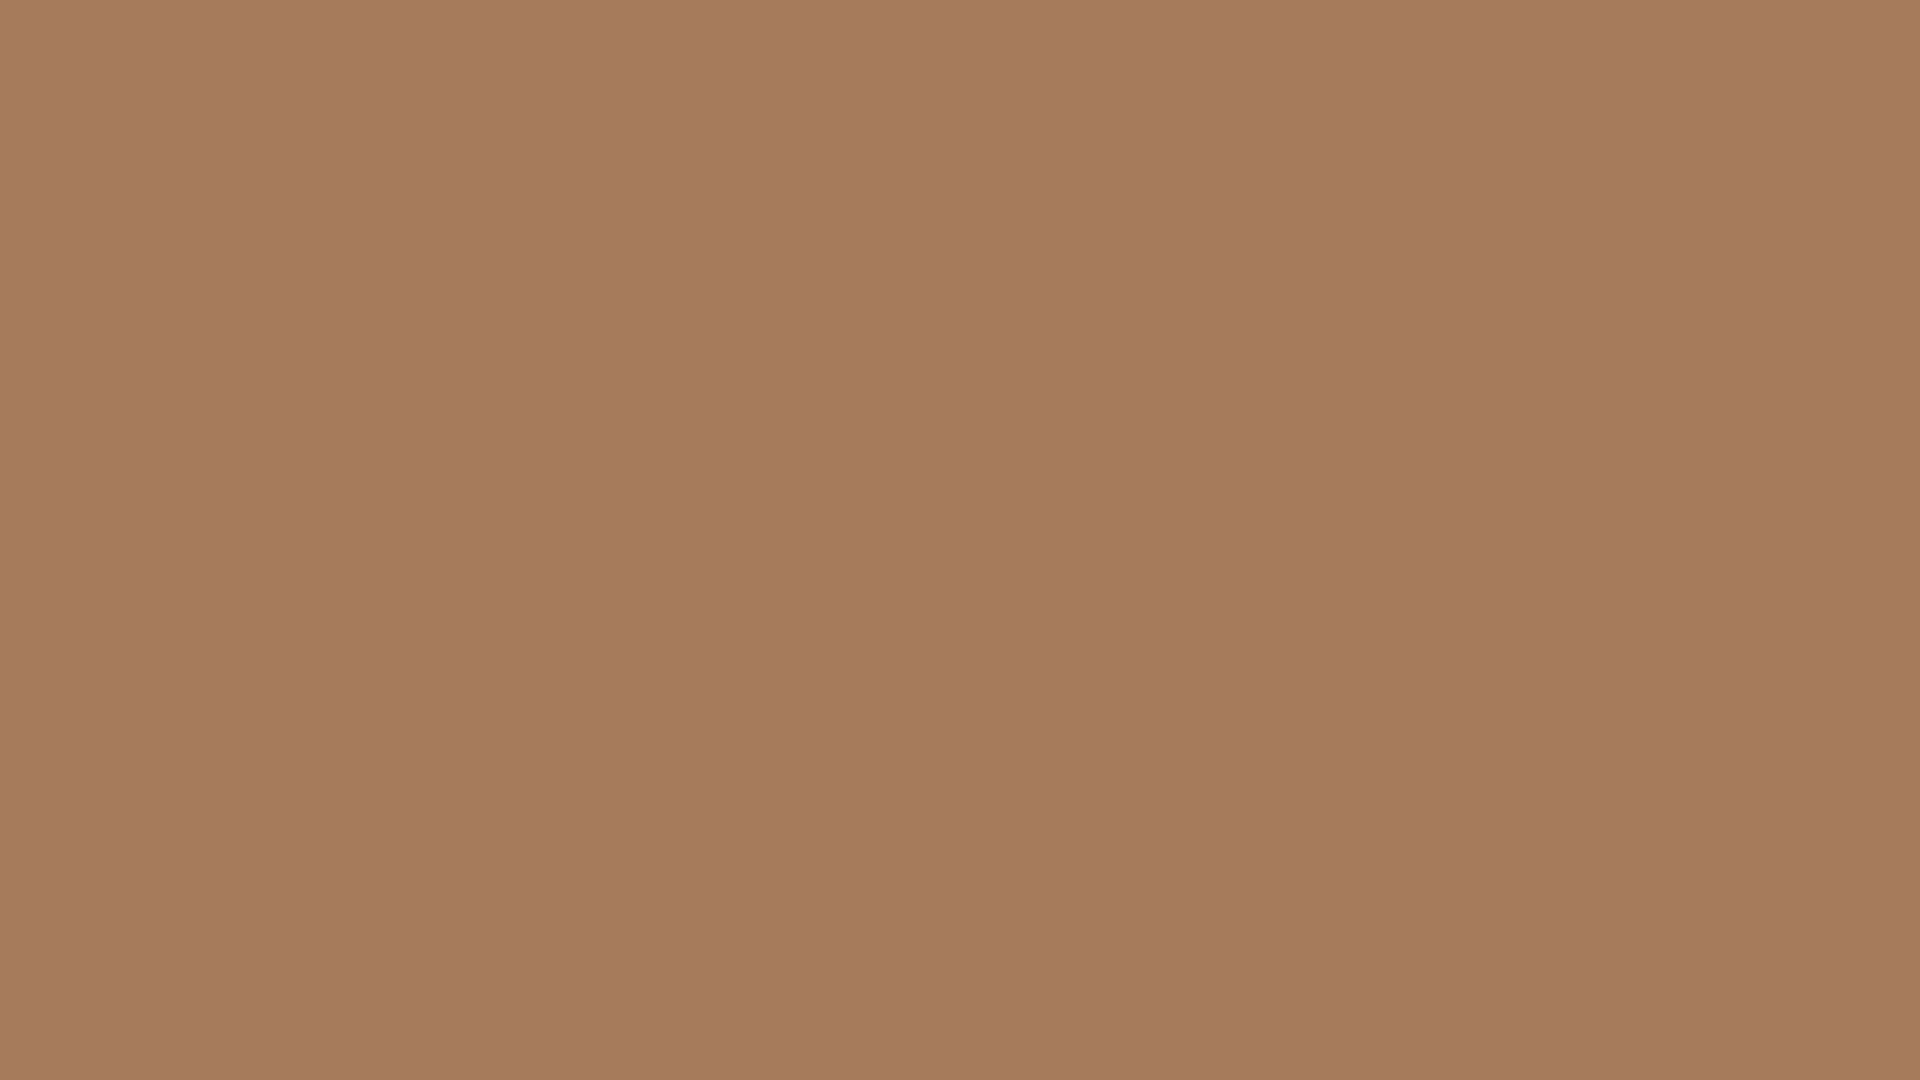 1920x1080 Tuscan Tan Solid Color Background